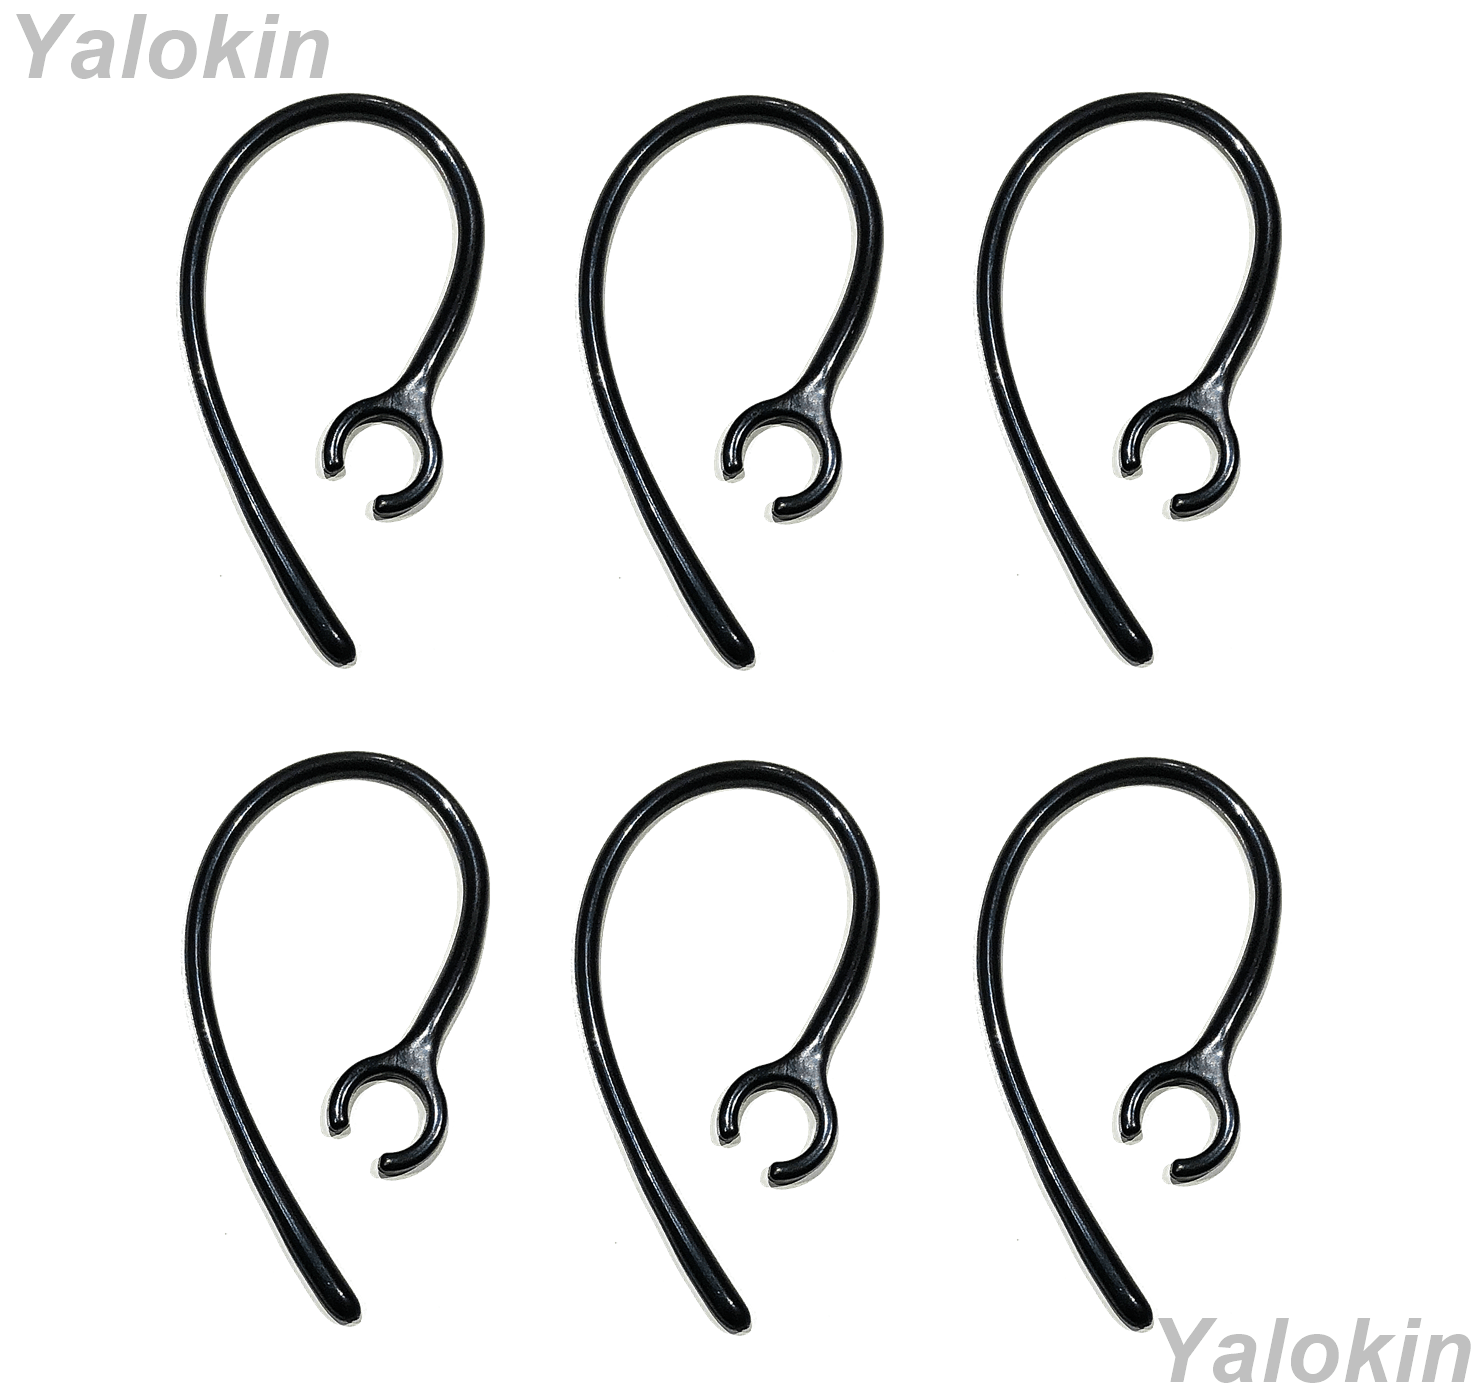 6 pcs (SK-CHP) Earhooks for Sony PS3 Playstation 3